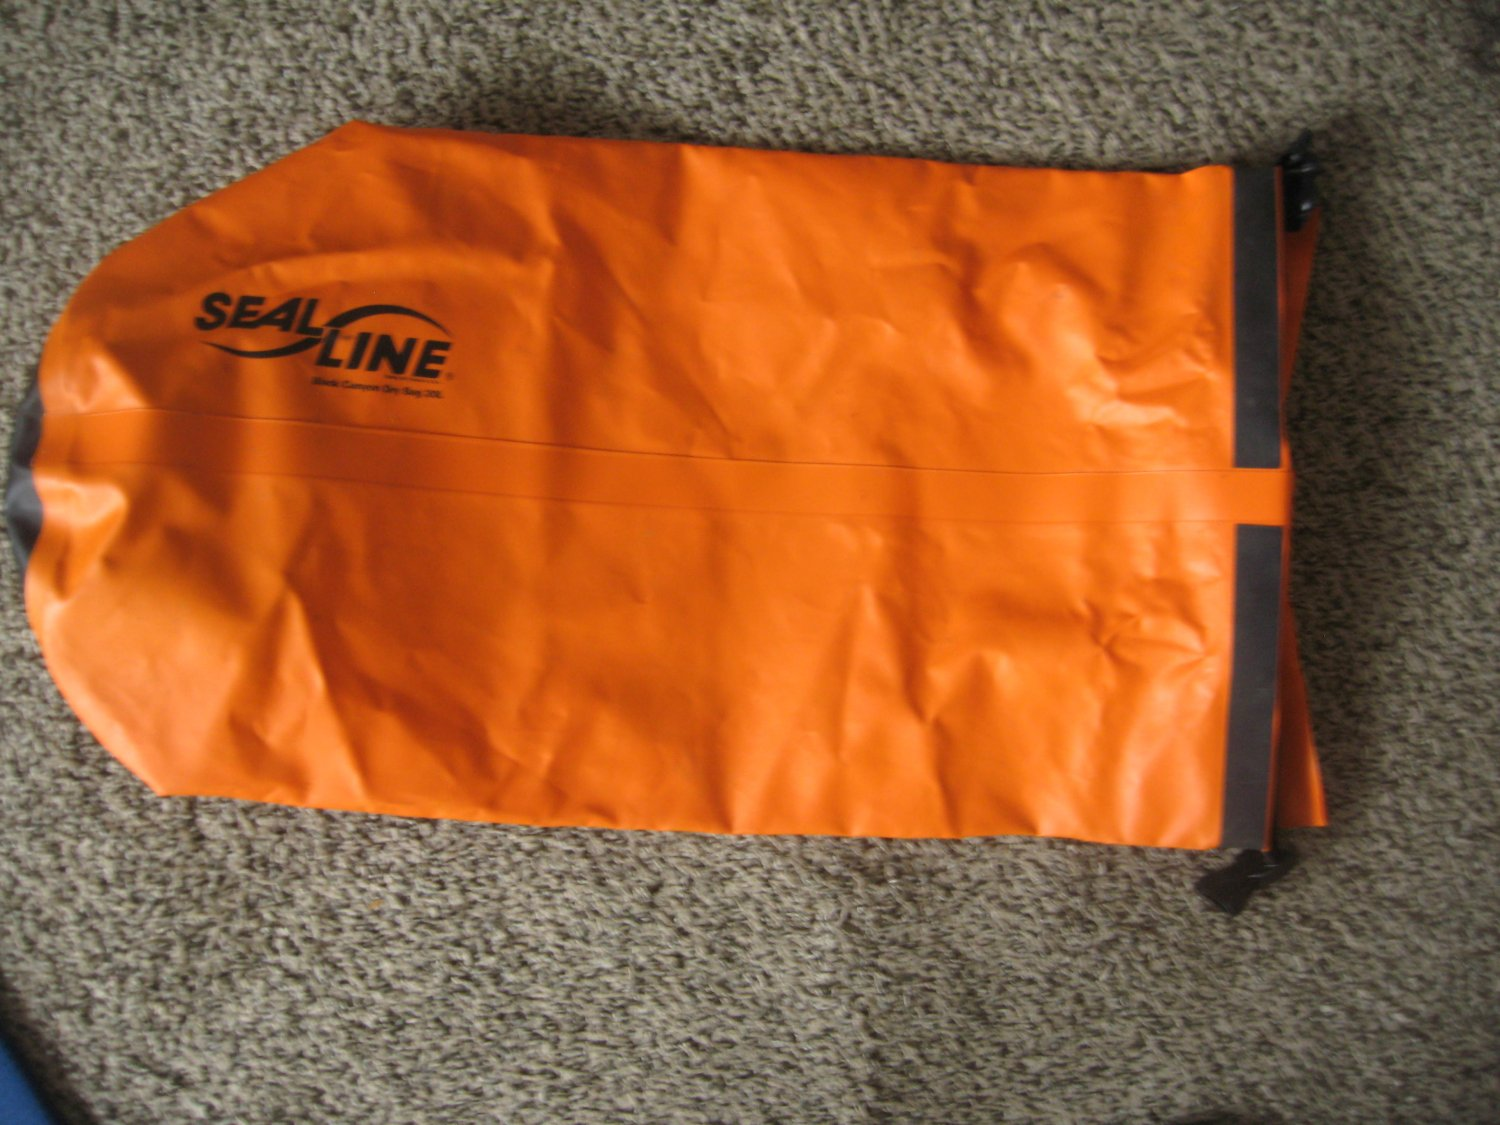 Seal Line 20L Black Canyon Dry Bag  preowned camping gear